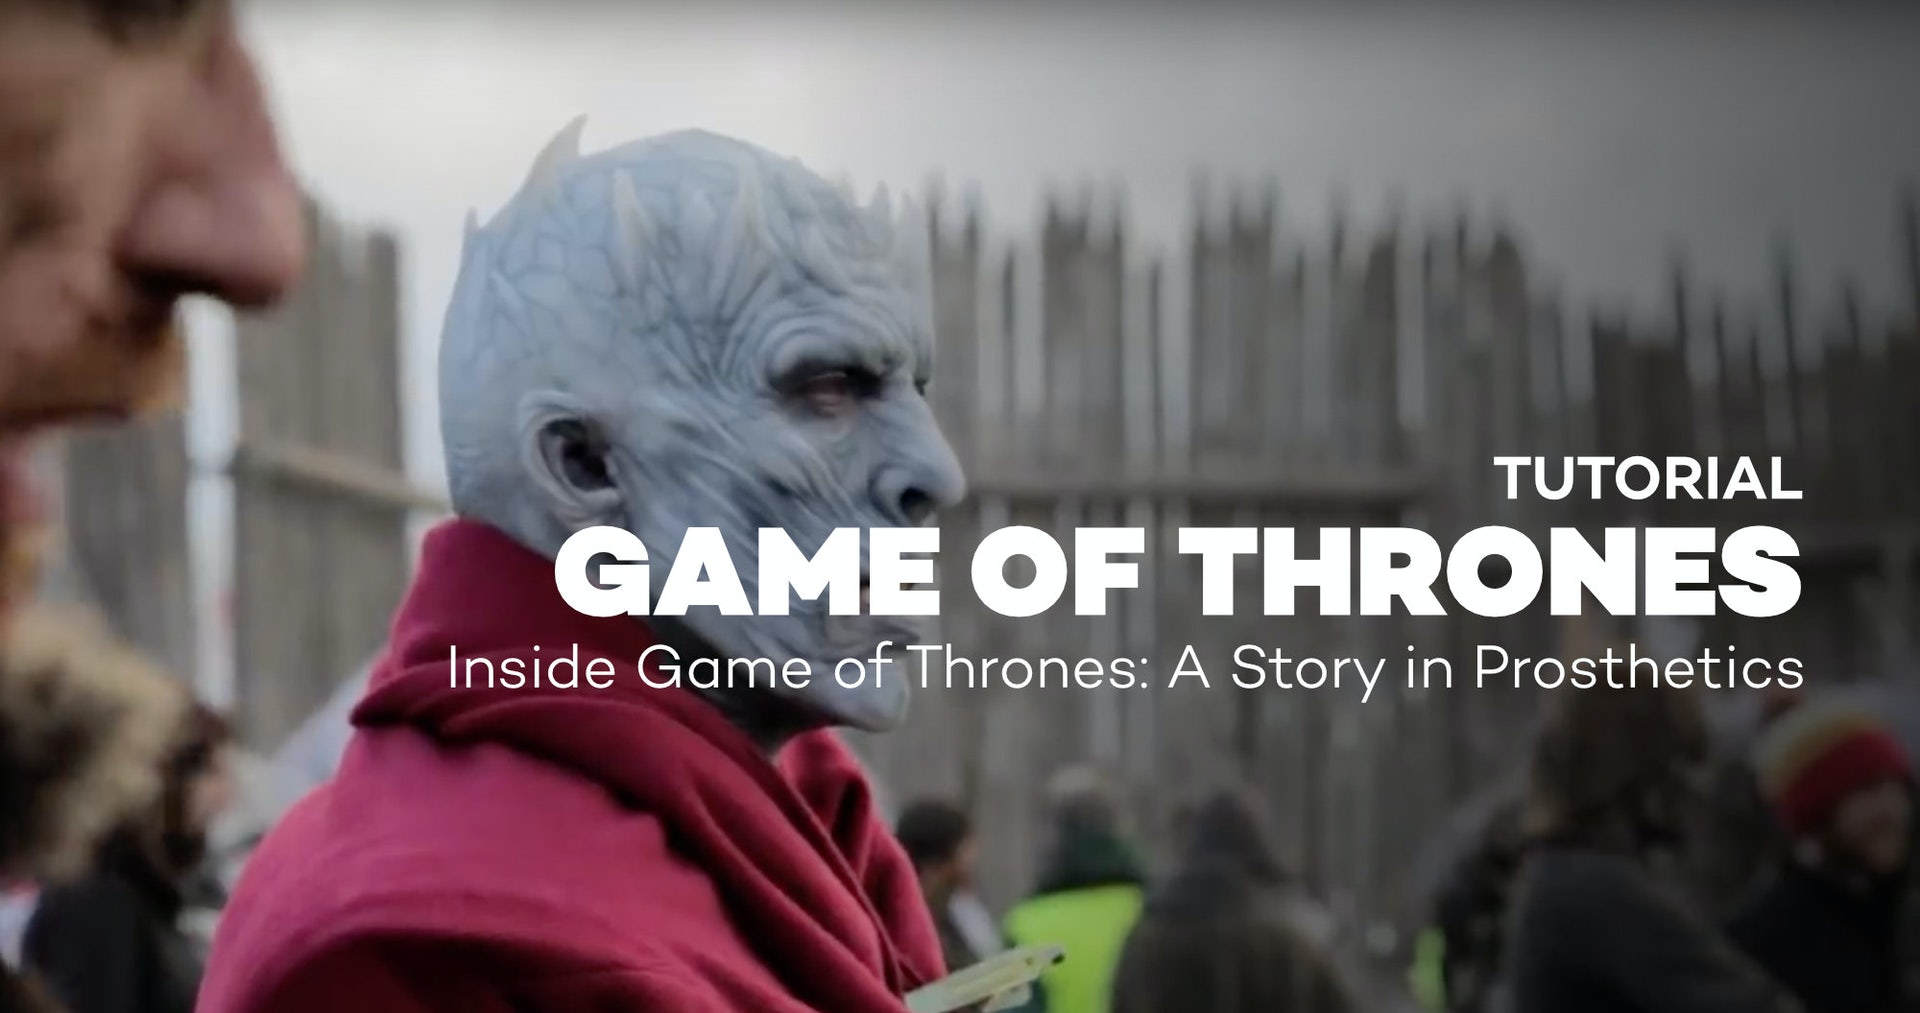 Tutorial: Inside Game of Thrones - A Story in Prosthetics